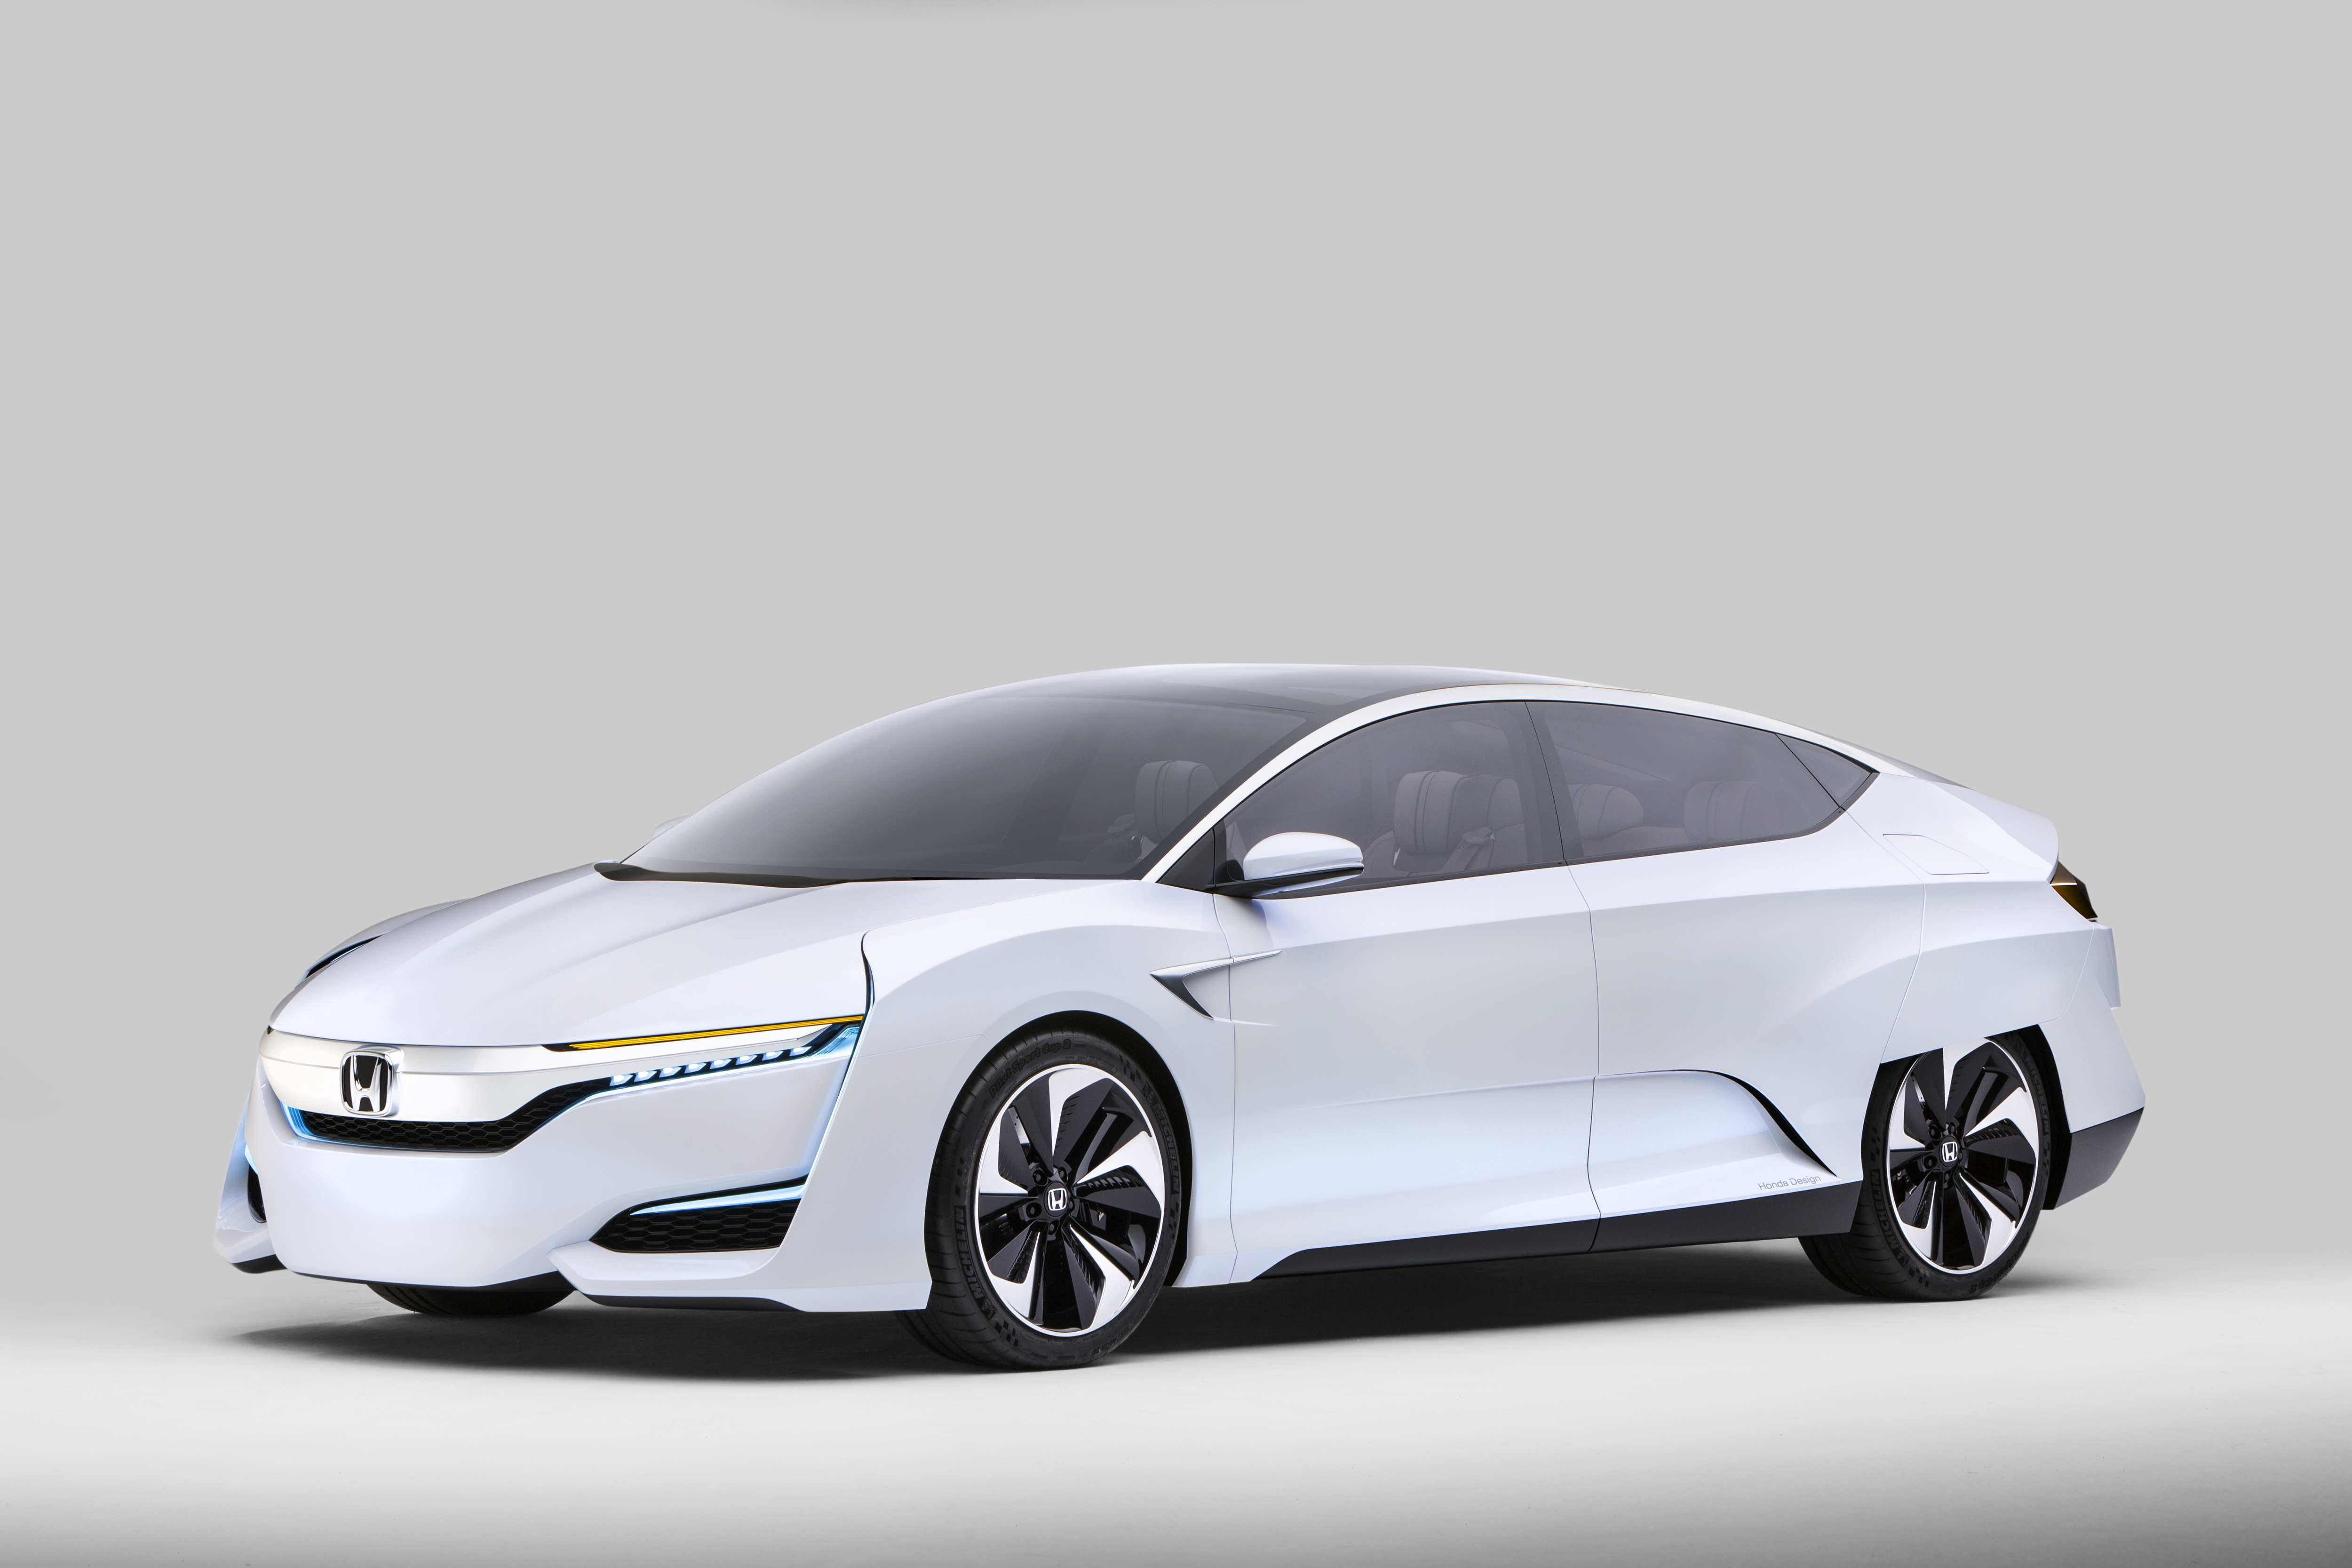 63 All New Honda Civic 2020 Concept Redesign and Concept with Honda Civic 2020 Concept